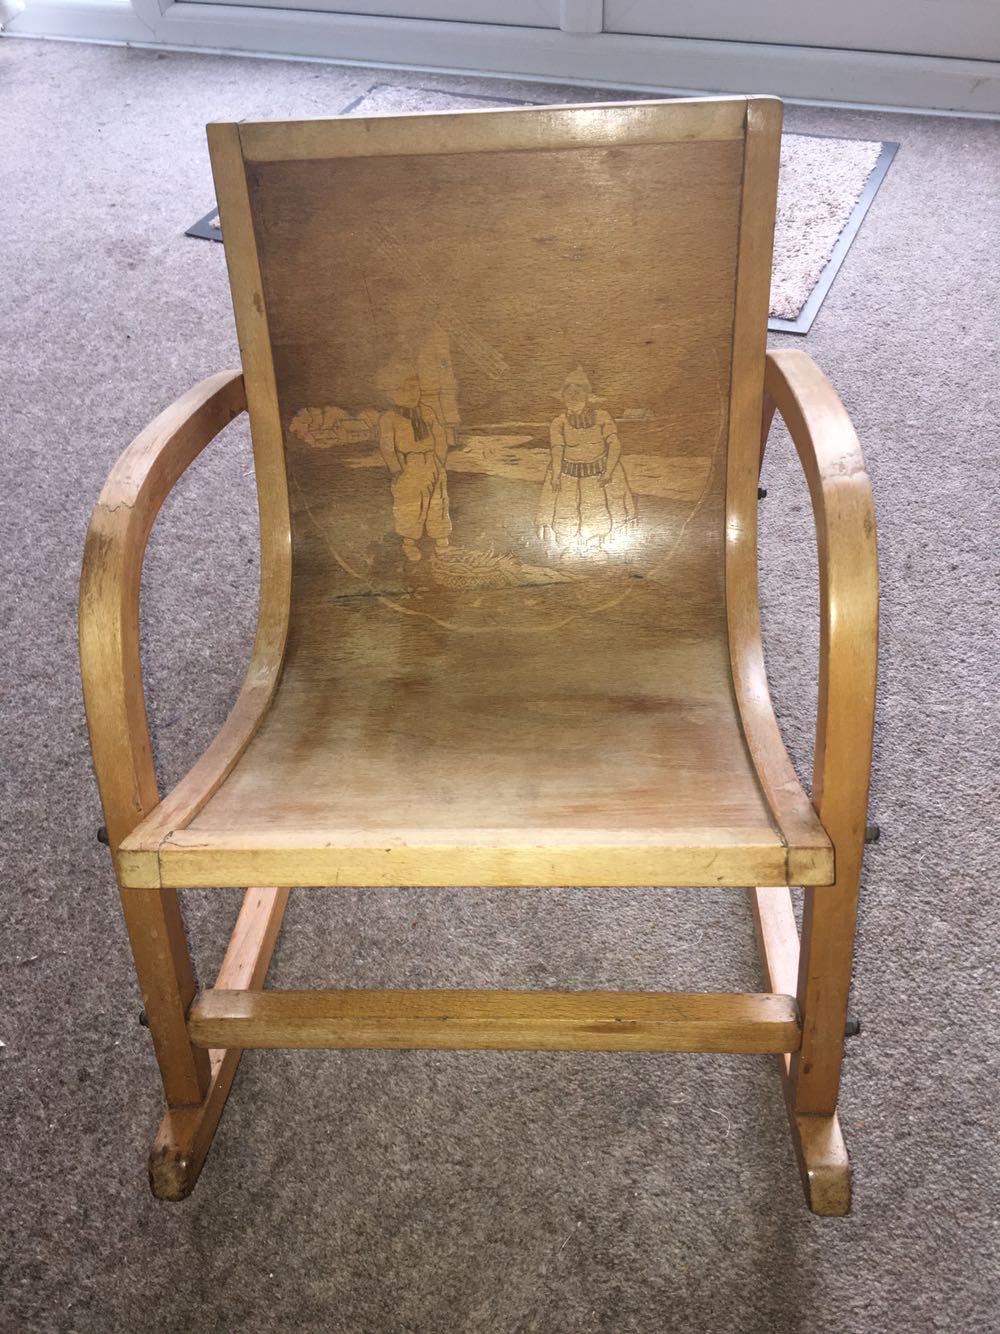 Rocking Chair for sale in UK